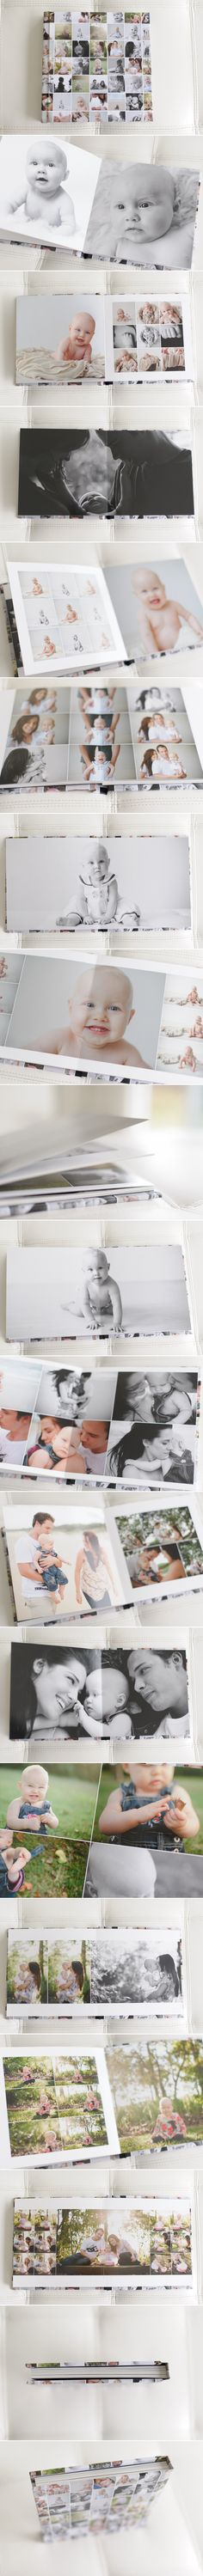 Gorgeous family album